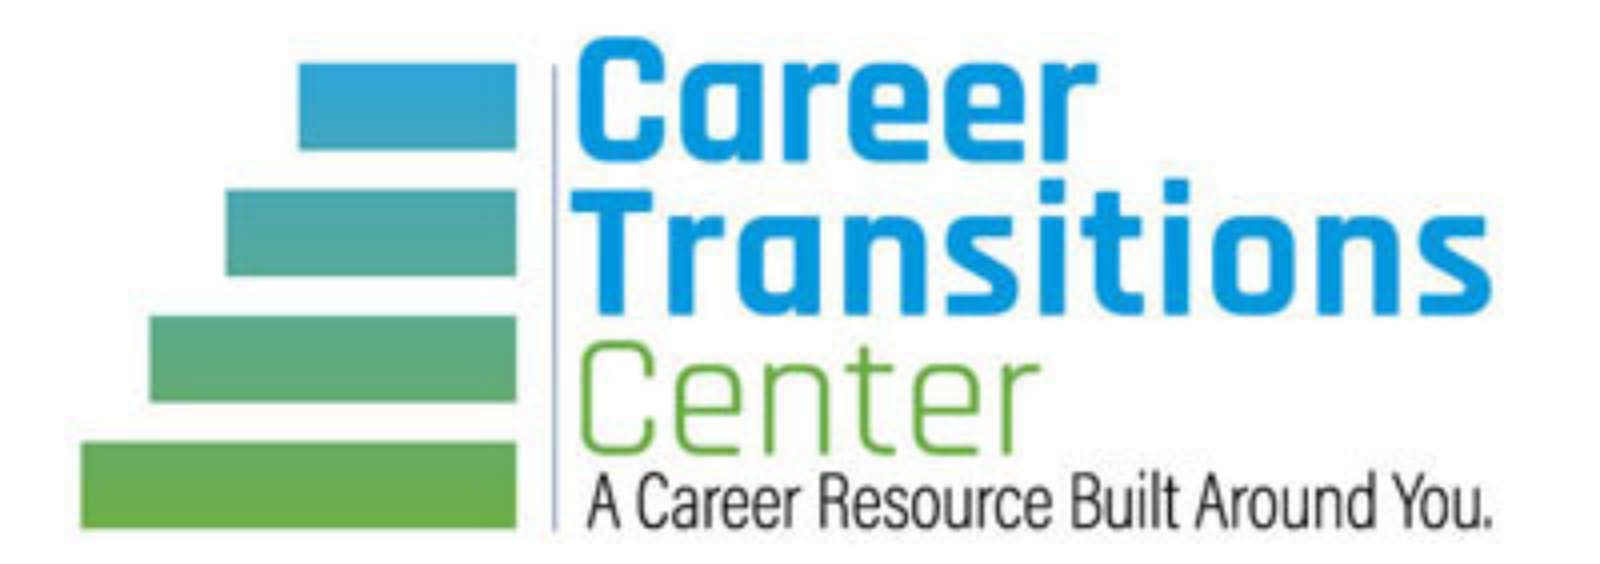 Career transitions center of chicago logo